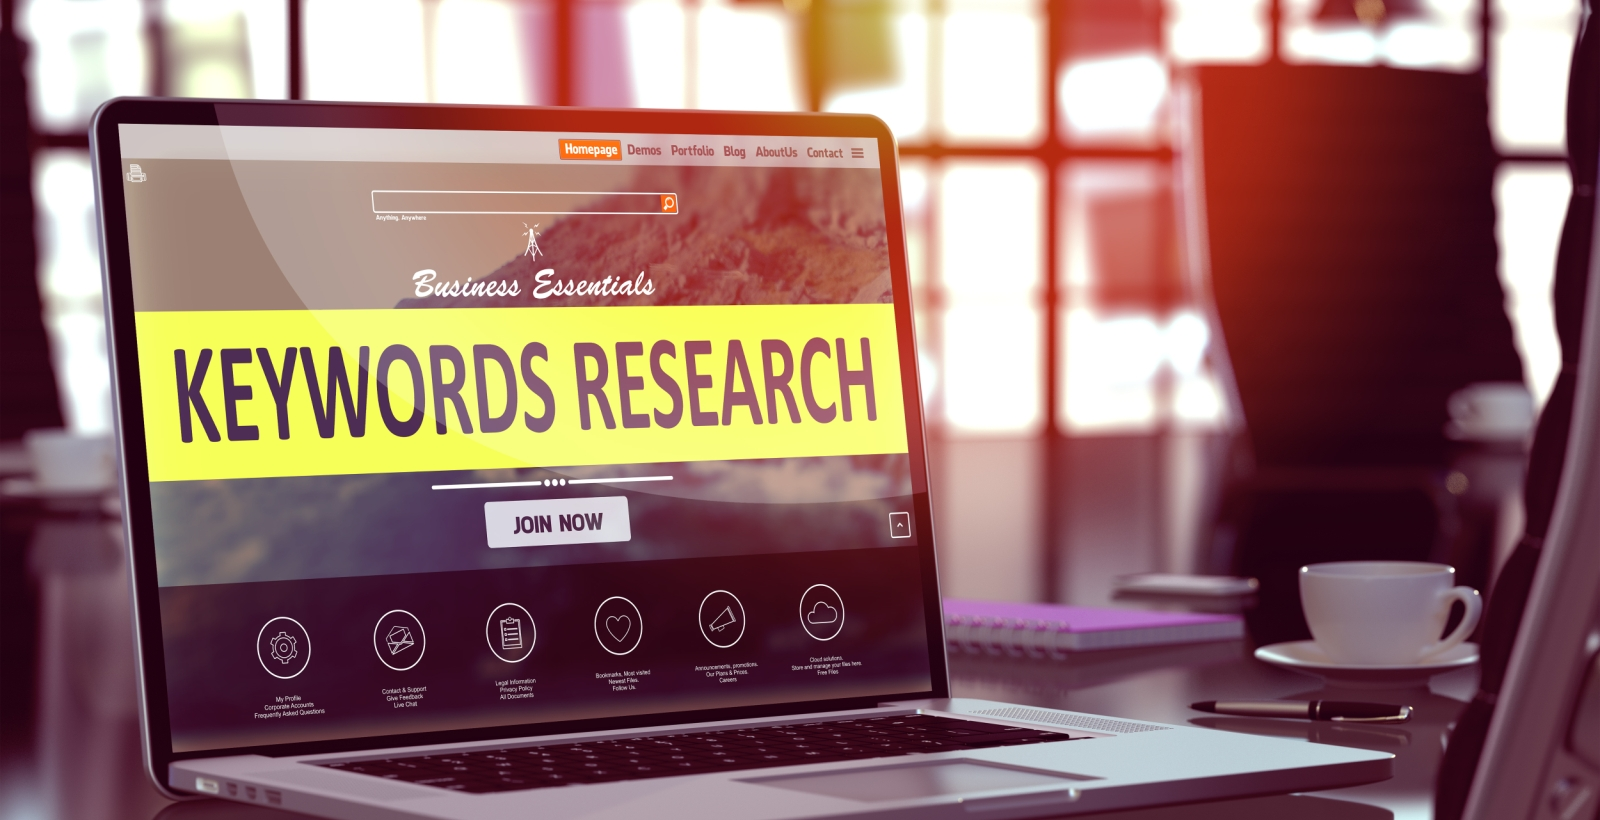 keyword research image for content marketing